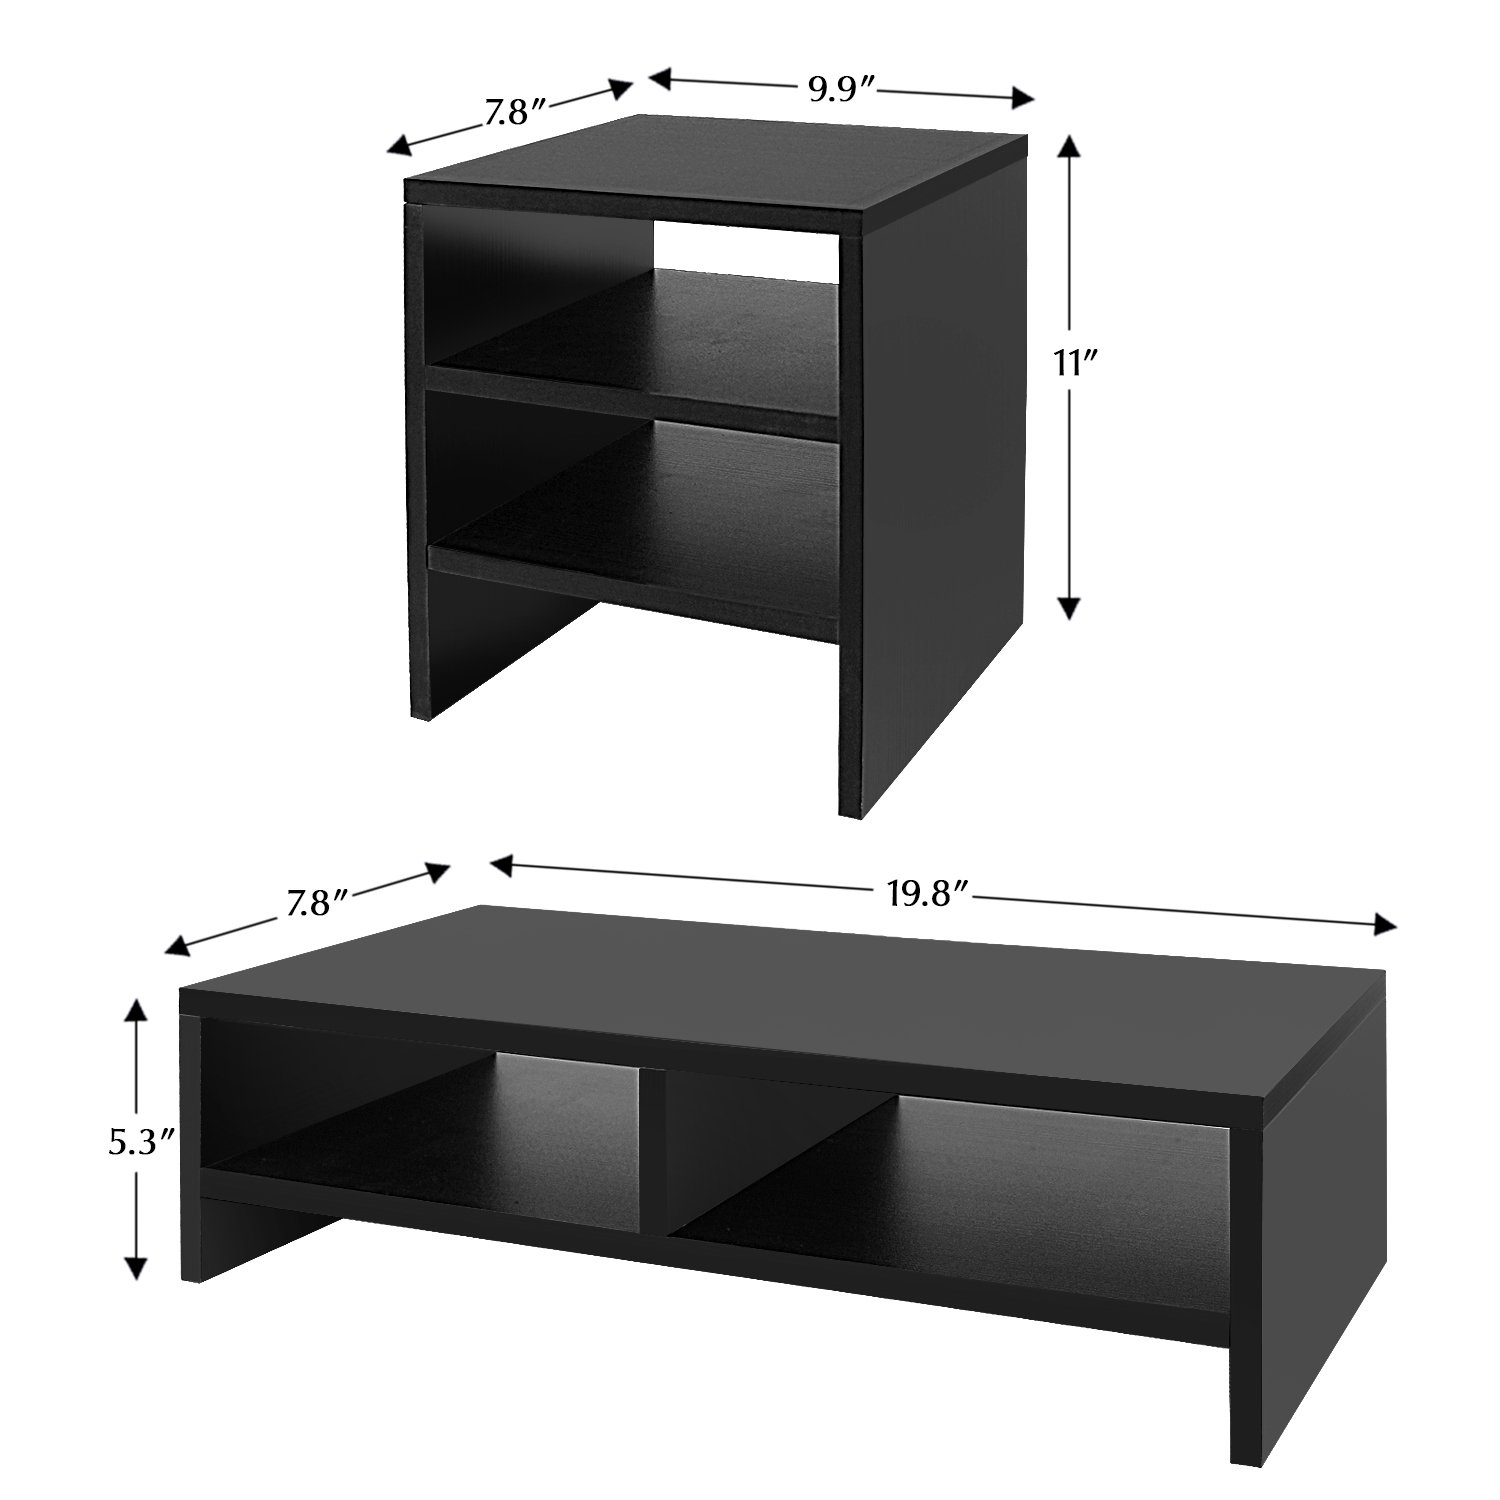 Jerry & Maggie - Wood Monitor Stand - 2 Parts Combination - Modern Dresser Shelf Unit Storage Desk Organizer Computer Stand Shelving - 2 Parts Multi Function Grayish Black Shelving